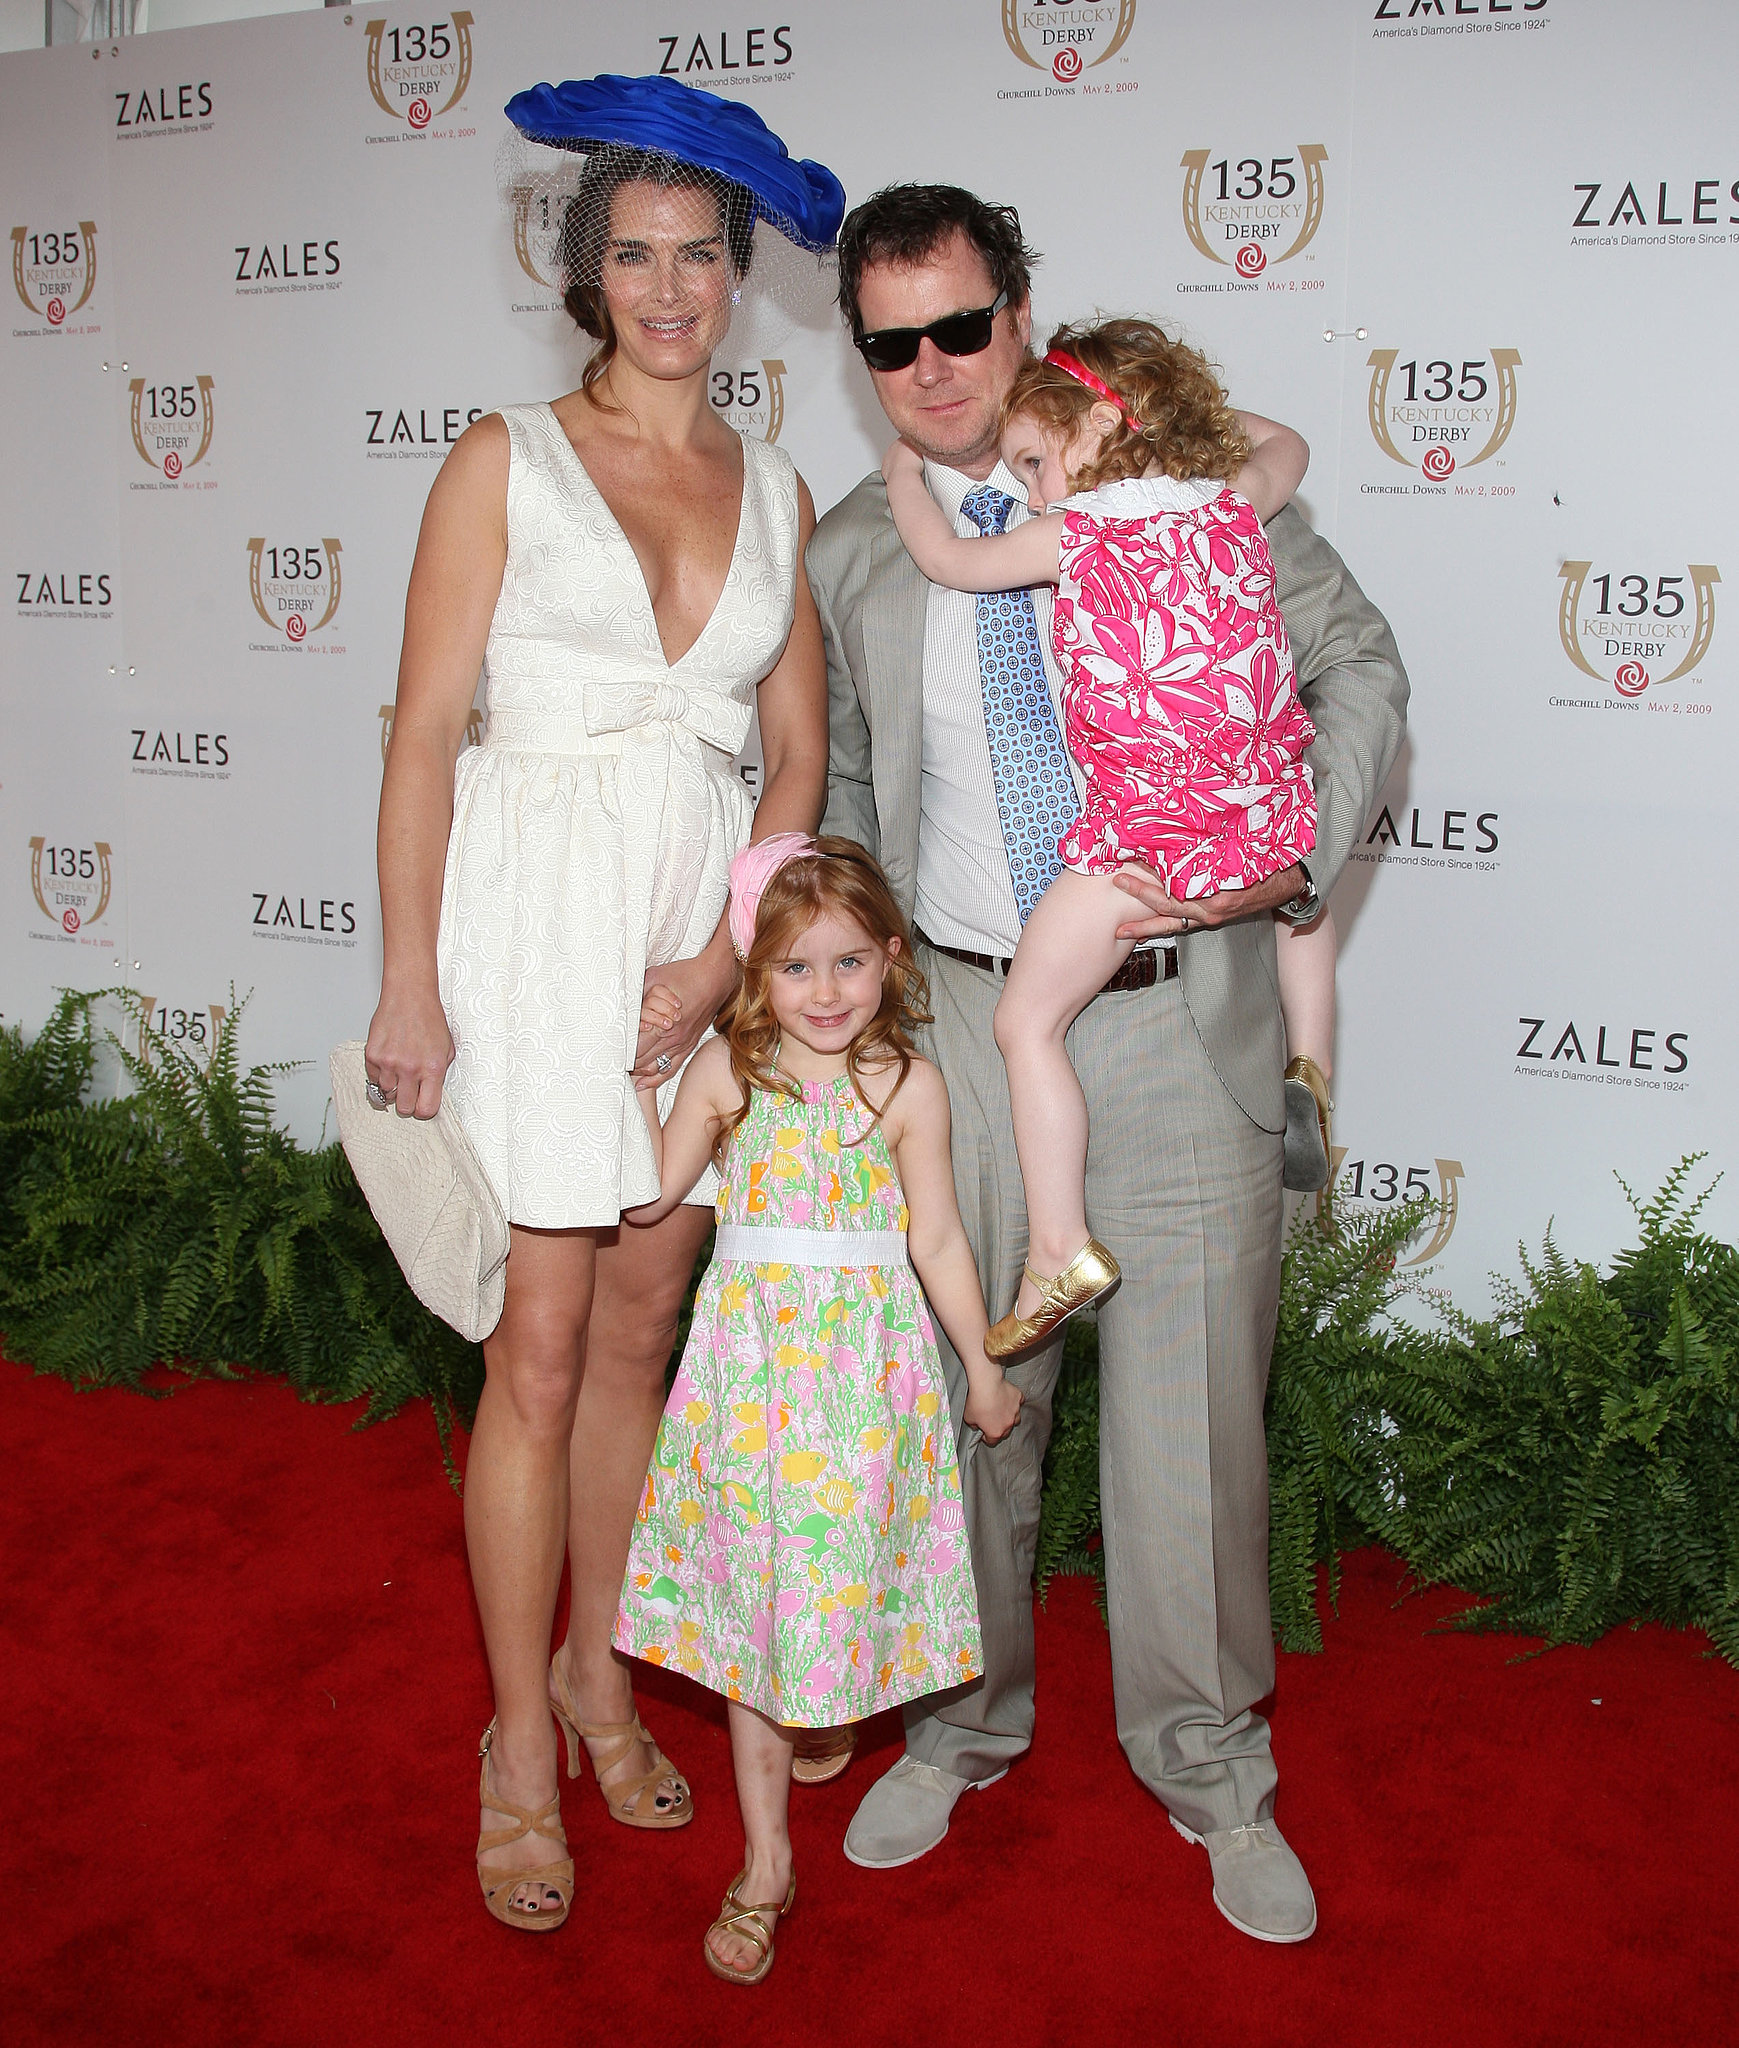 Brooke Shields brought her whole family to Kentucky for the 2009 Derby fun.